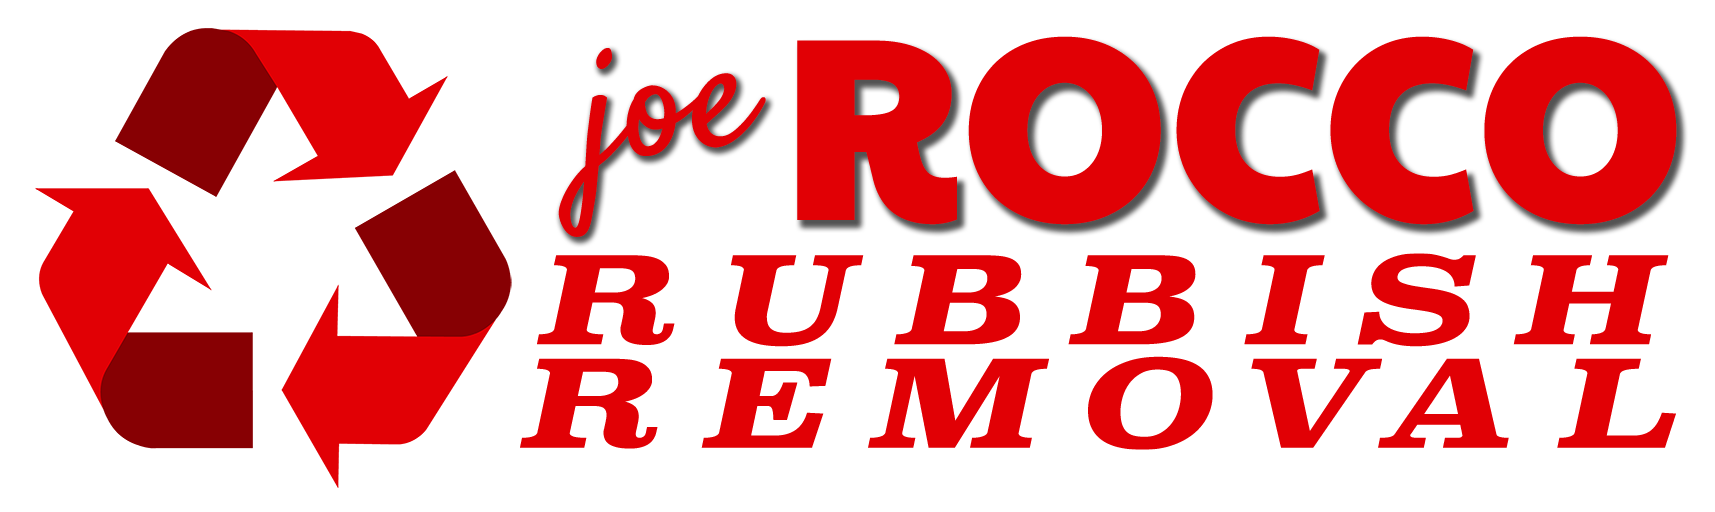 Joe Rocco Rubbish Removal